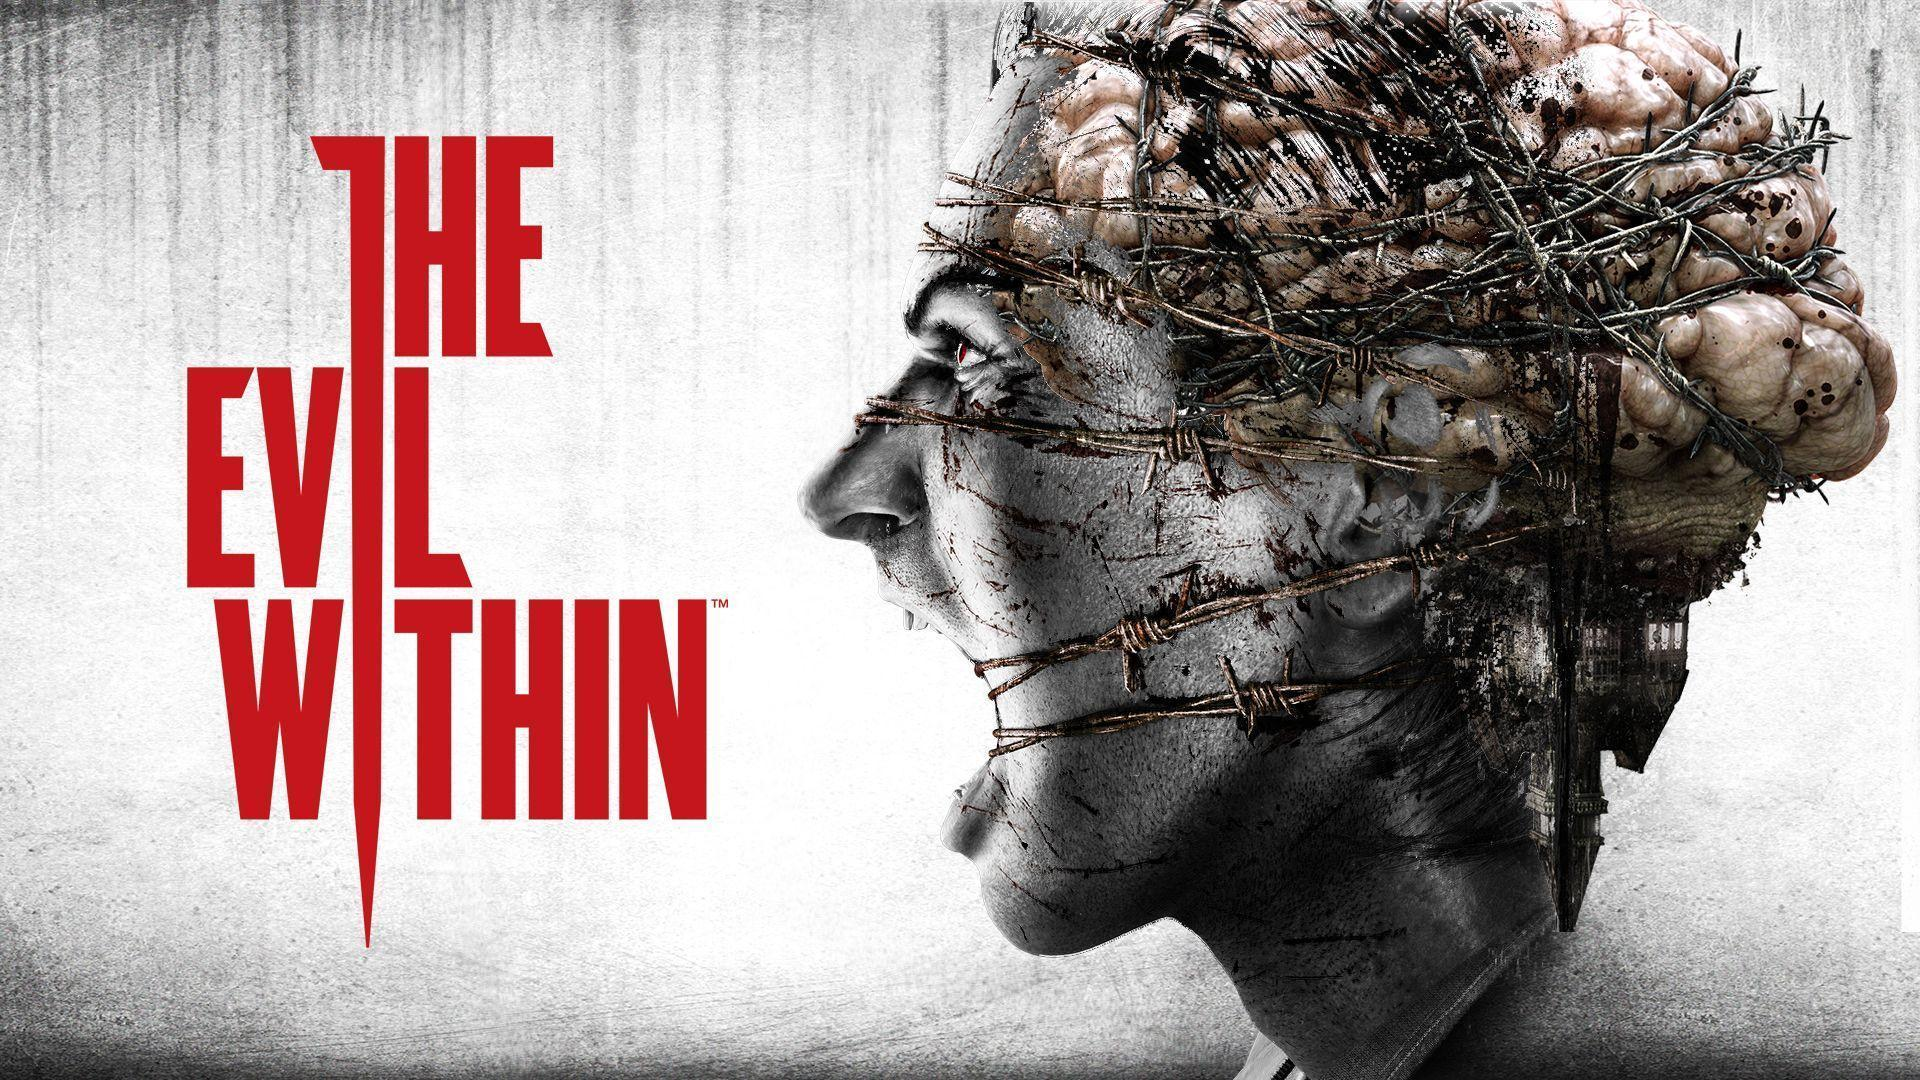 Wallpaper Theodore Harbinger The Evil Within 2 Hd: The Evil Within Wallpapers